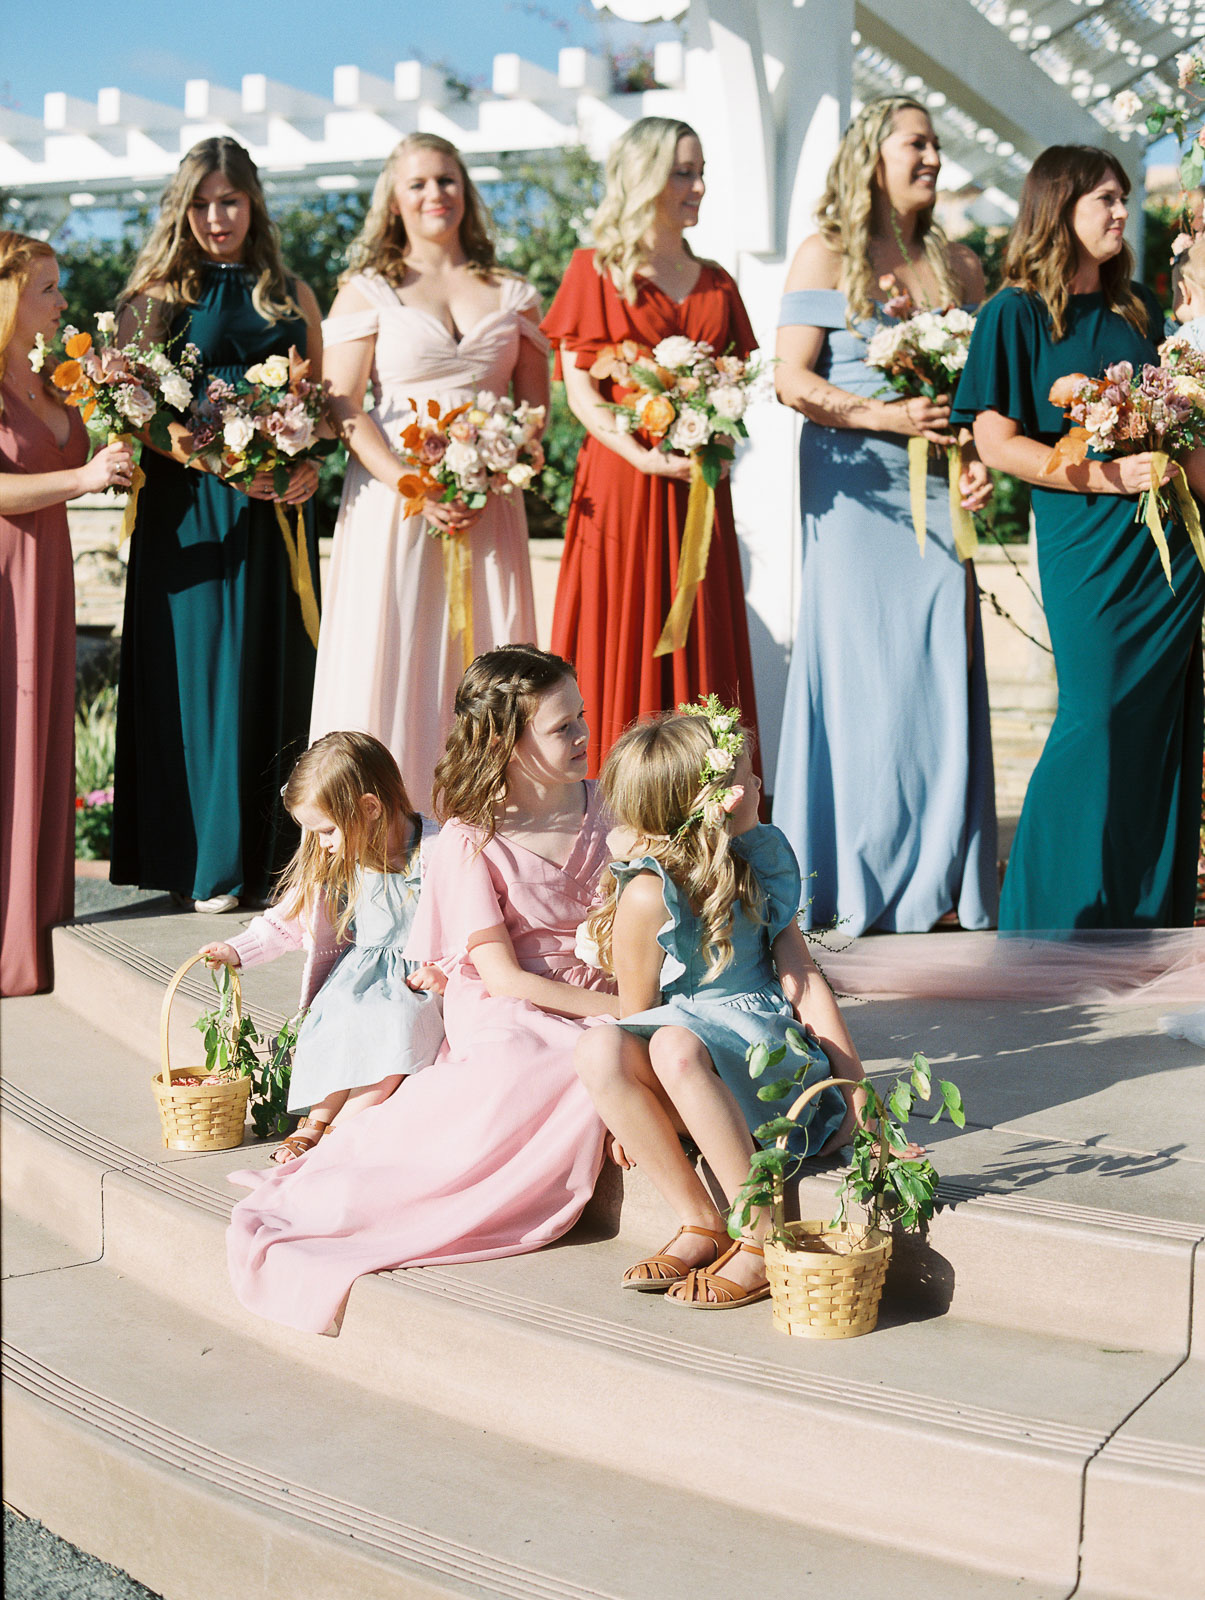 bridesmaids and flower girls in variety of colored dresses holding flowers